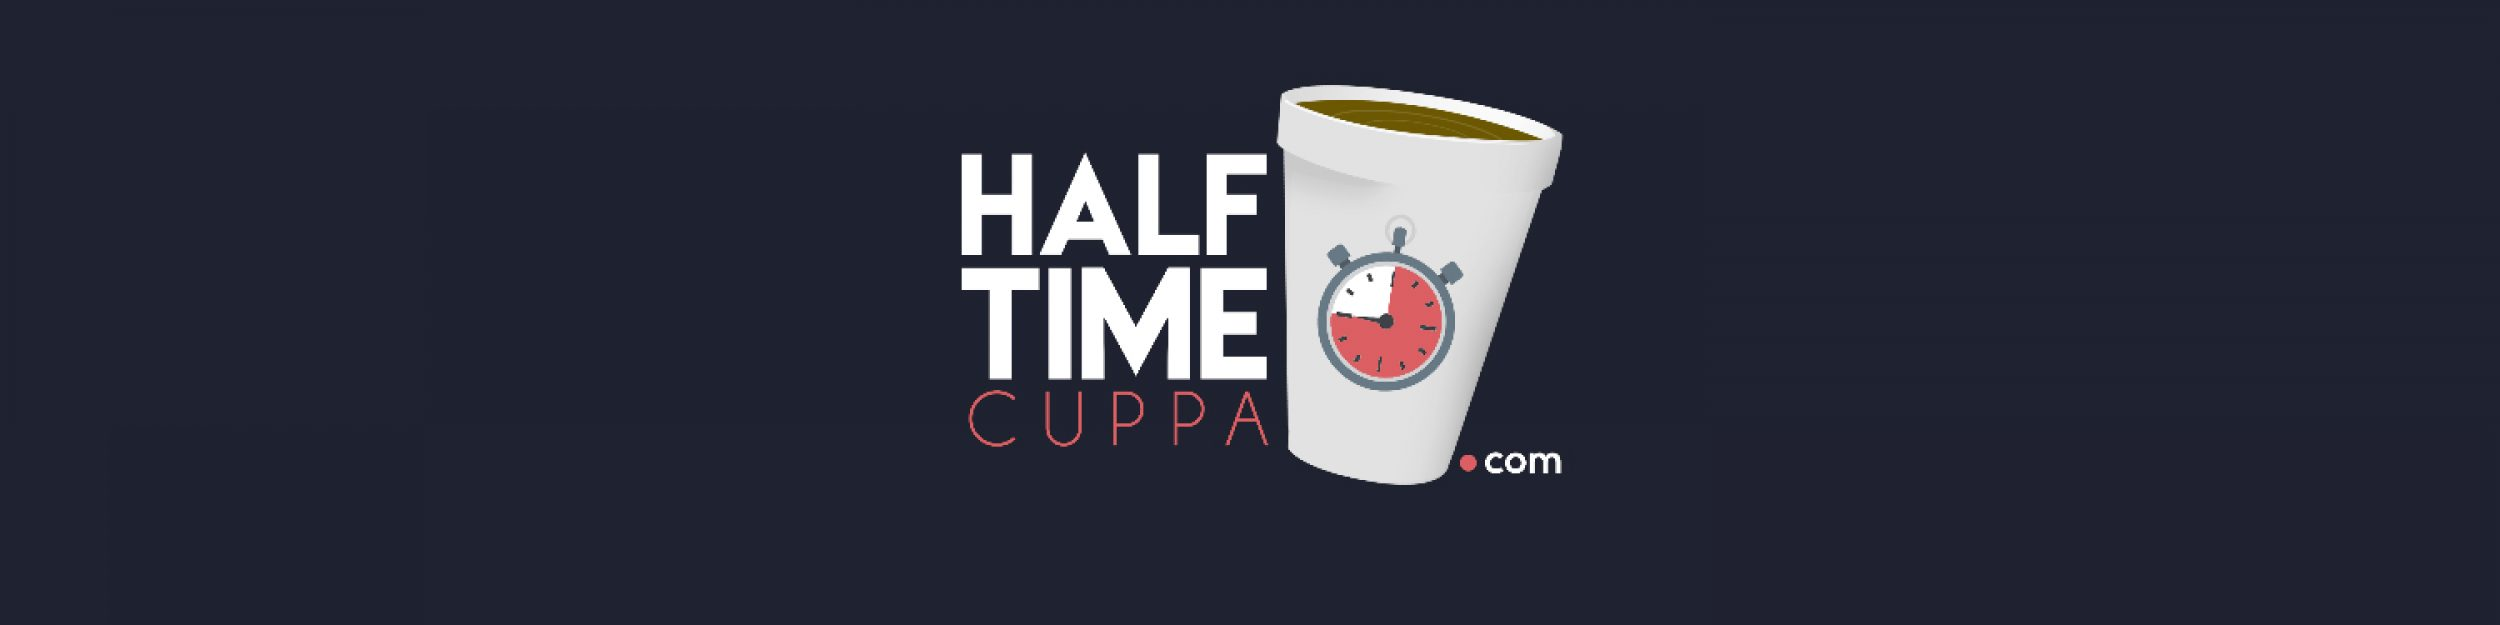 Welcome To Half Time Cuppa!